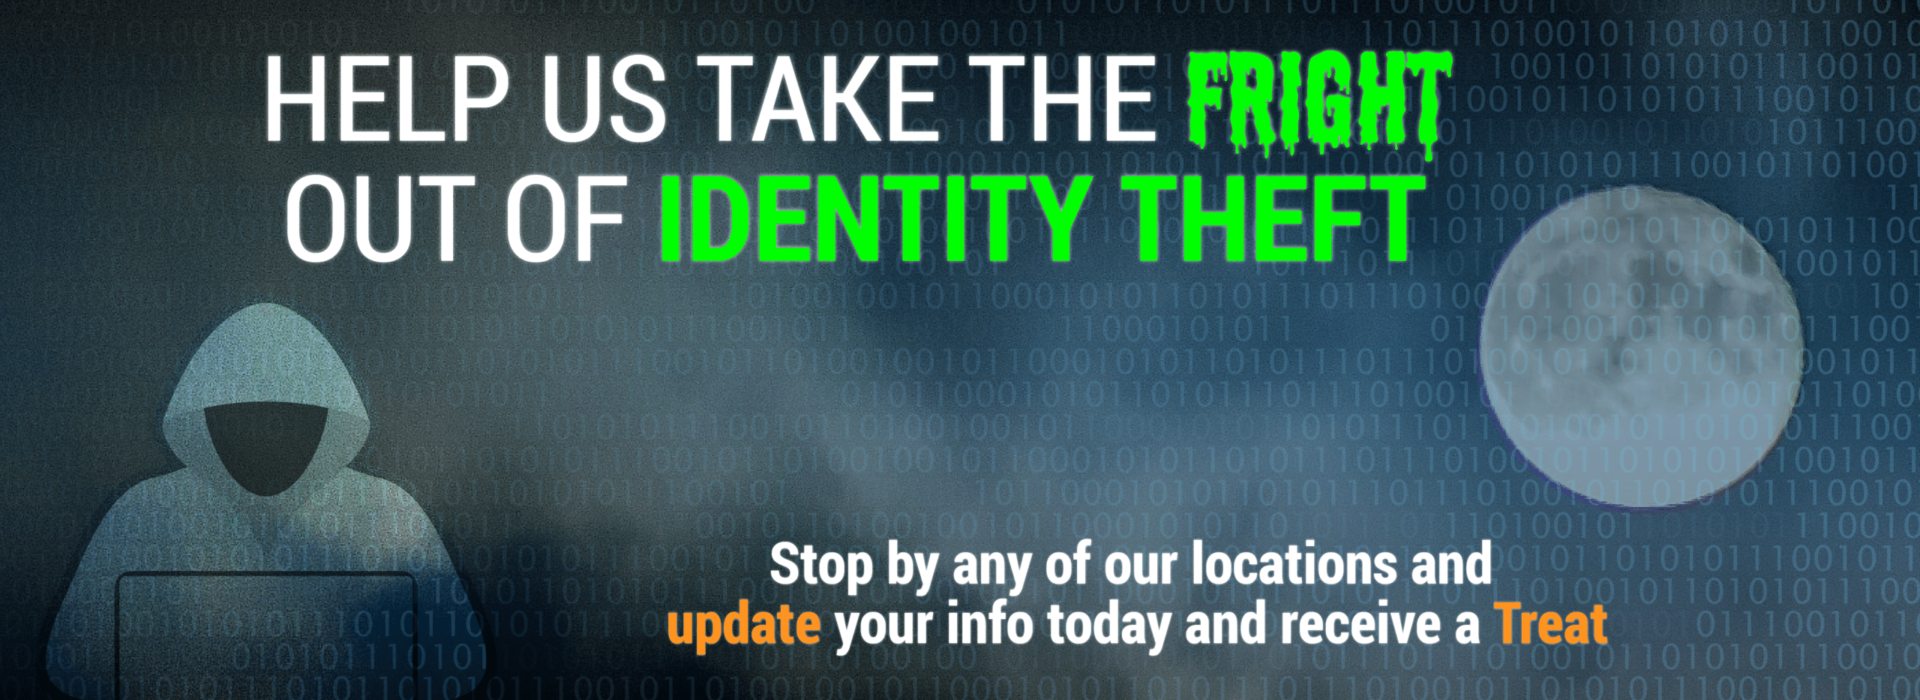 Help us take the fright out of identity theft.